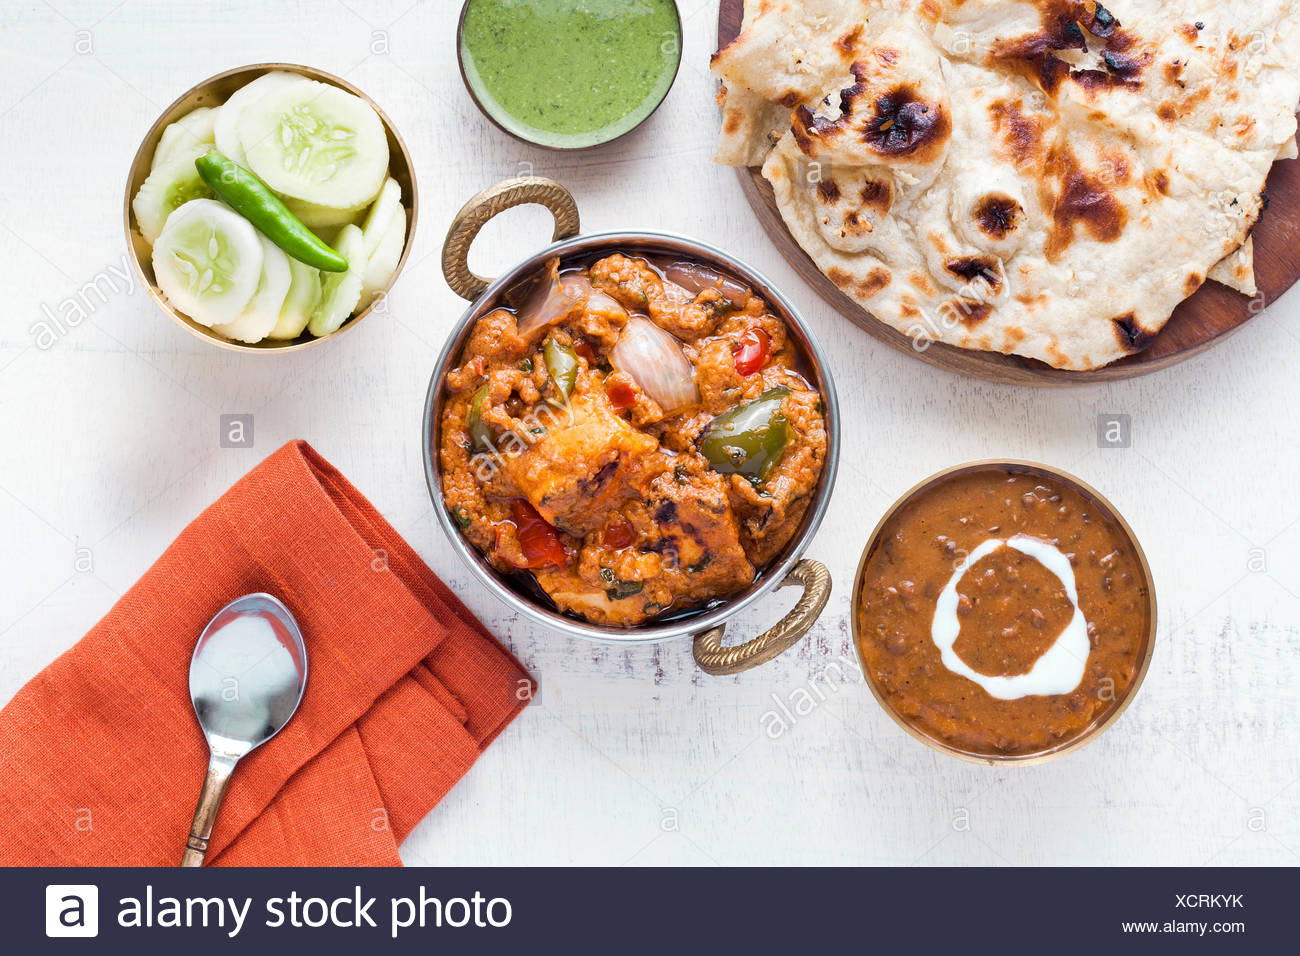 Indian Lunch with Paneer tikka masala, Dal Makhani, Naan, chutney and salad. - Stock Image